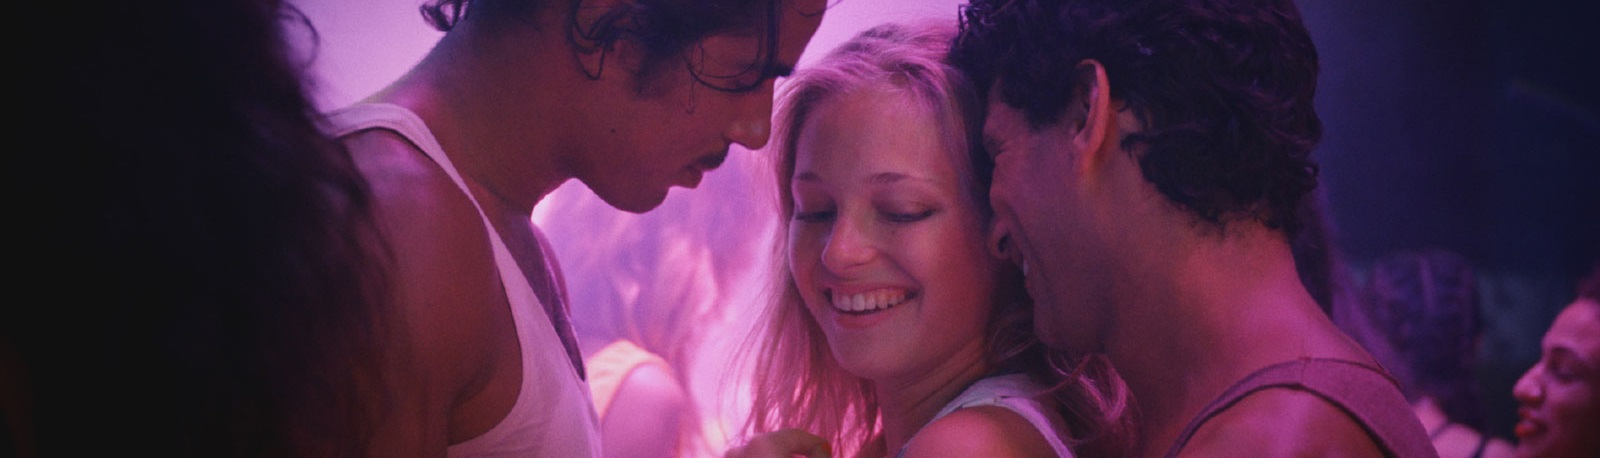 Cannes 2019 | Mektoub My Love : Intermezzo – Derrière le scandale, le film